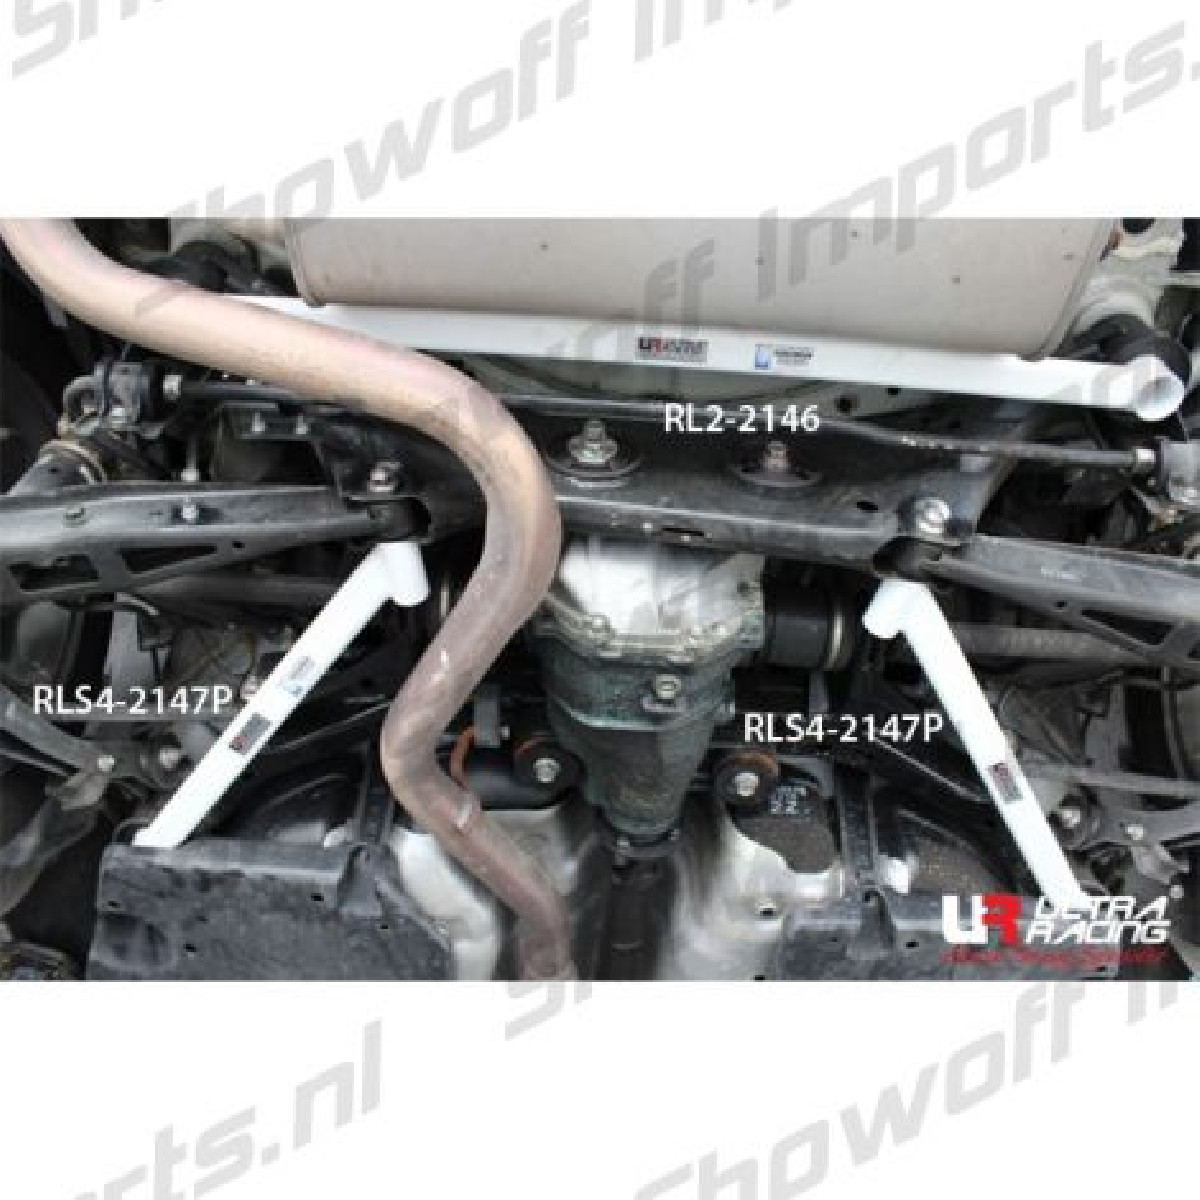 Subaru BRZ Ultra-R 2P Rear Lower Bar 2146